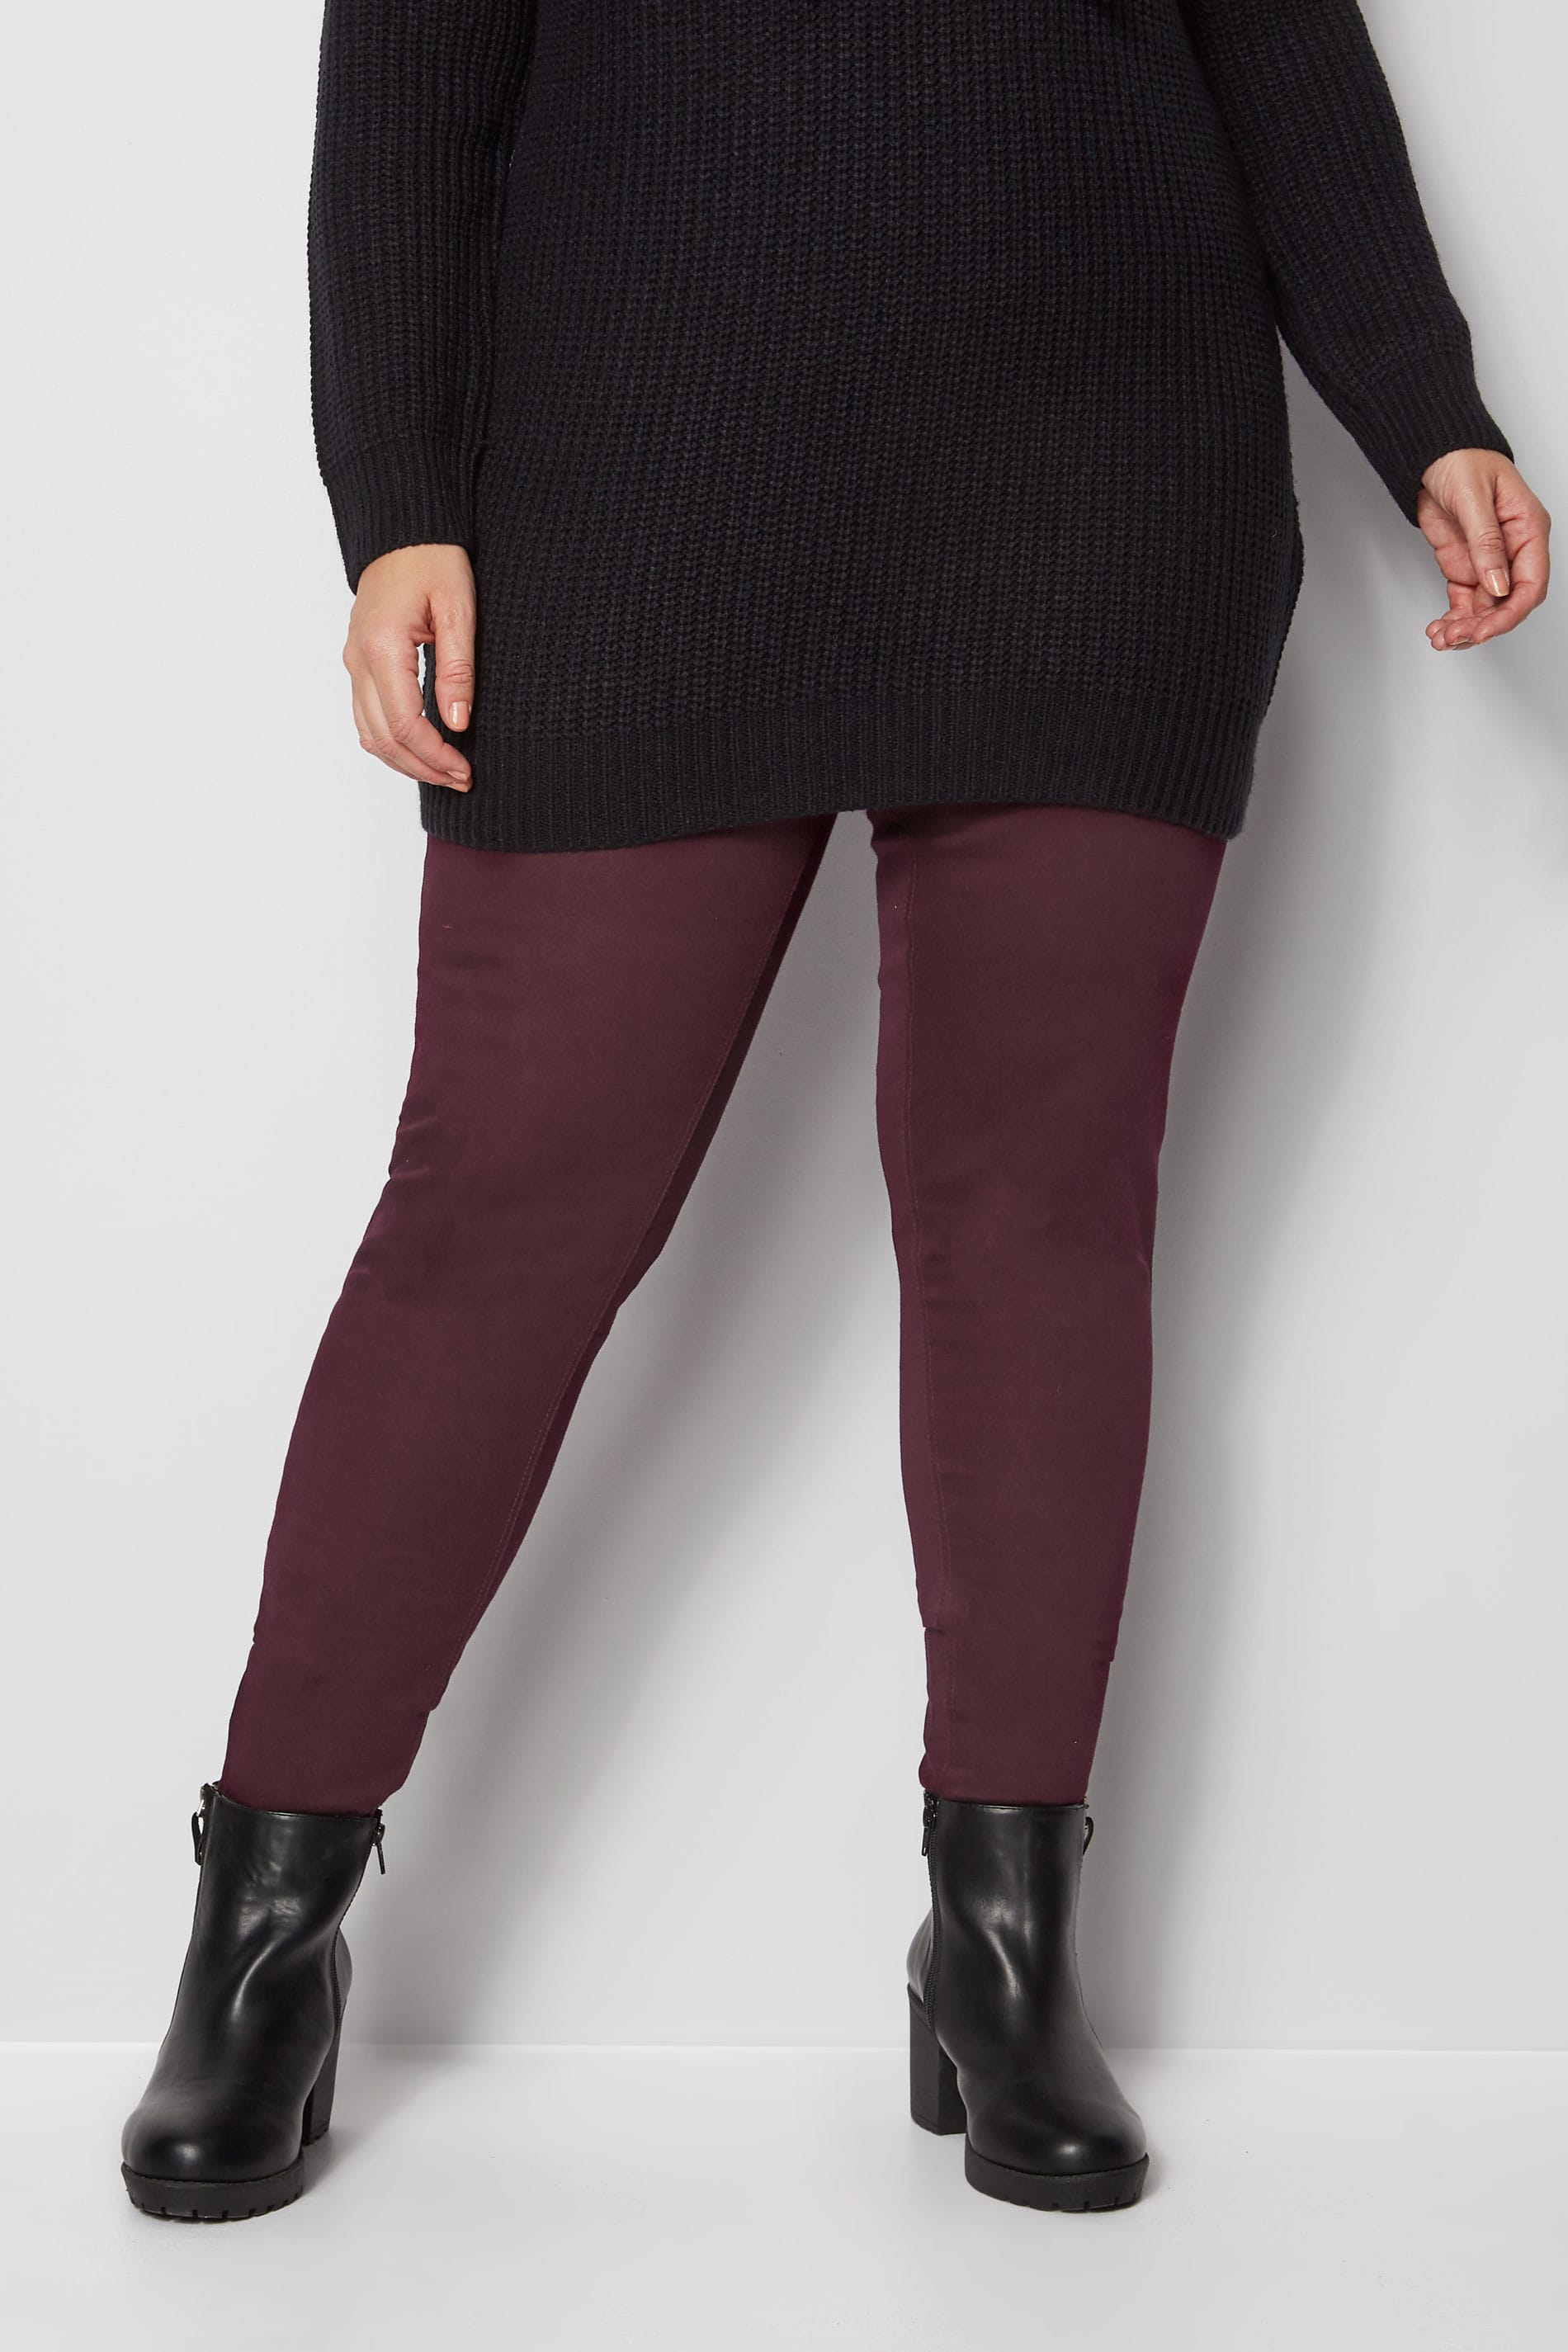 Burgundy Pull On Jenny Jeggings Plus Size 16 To 36